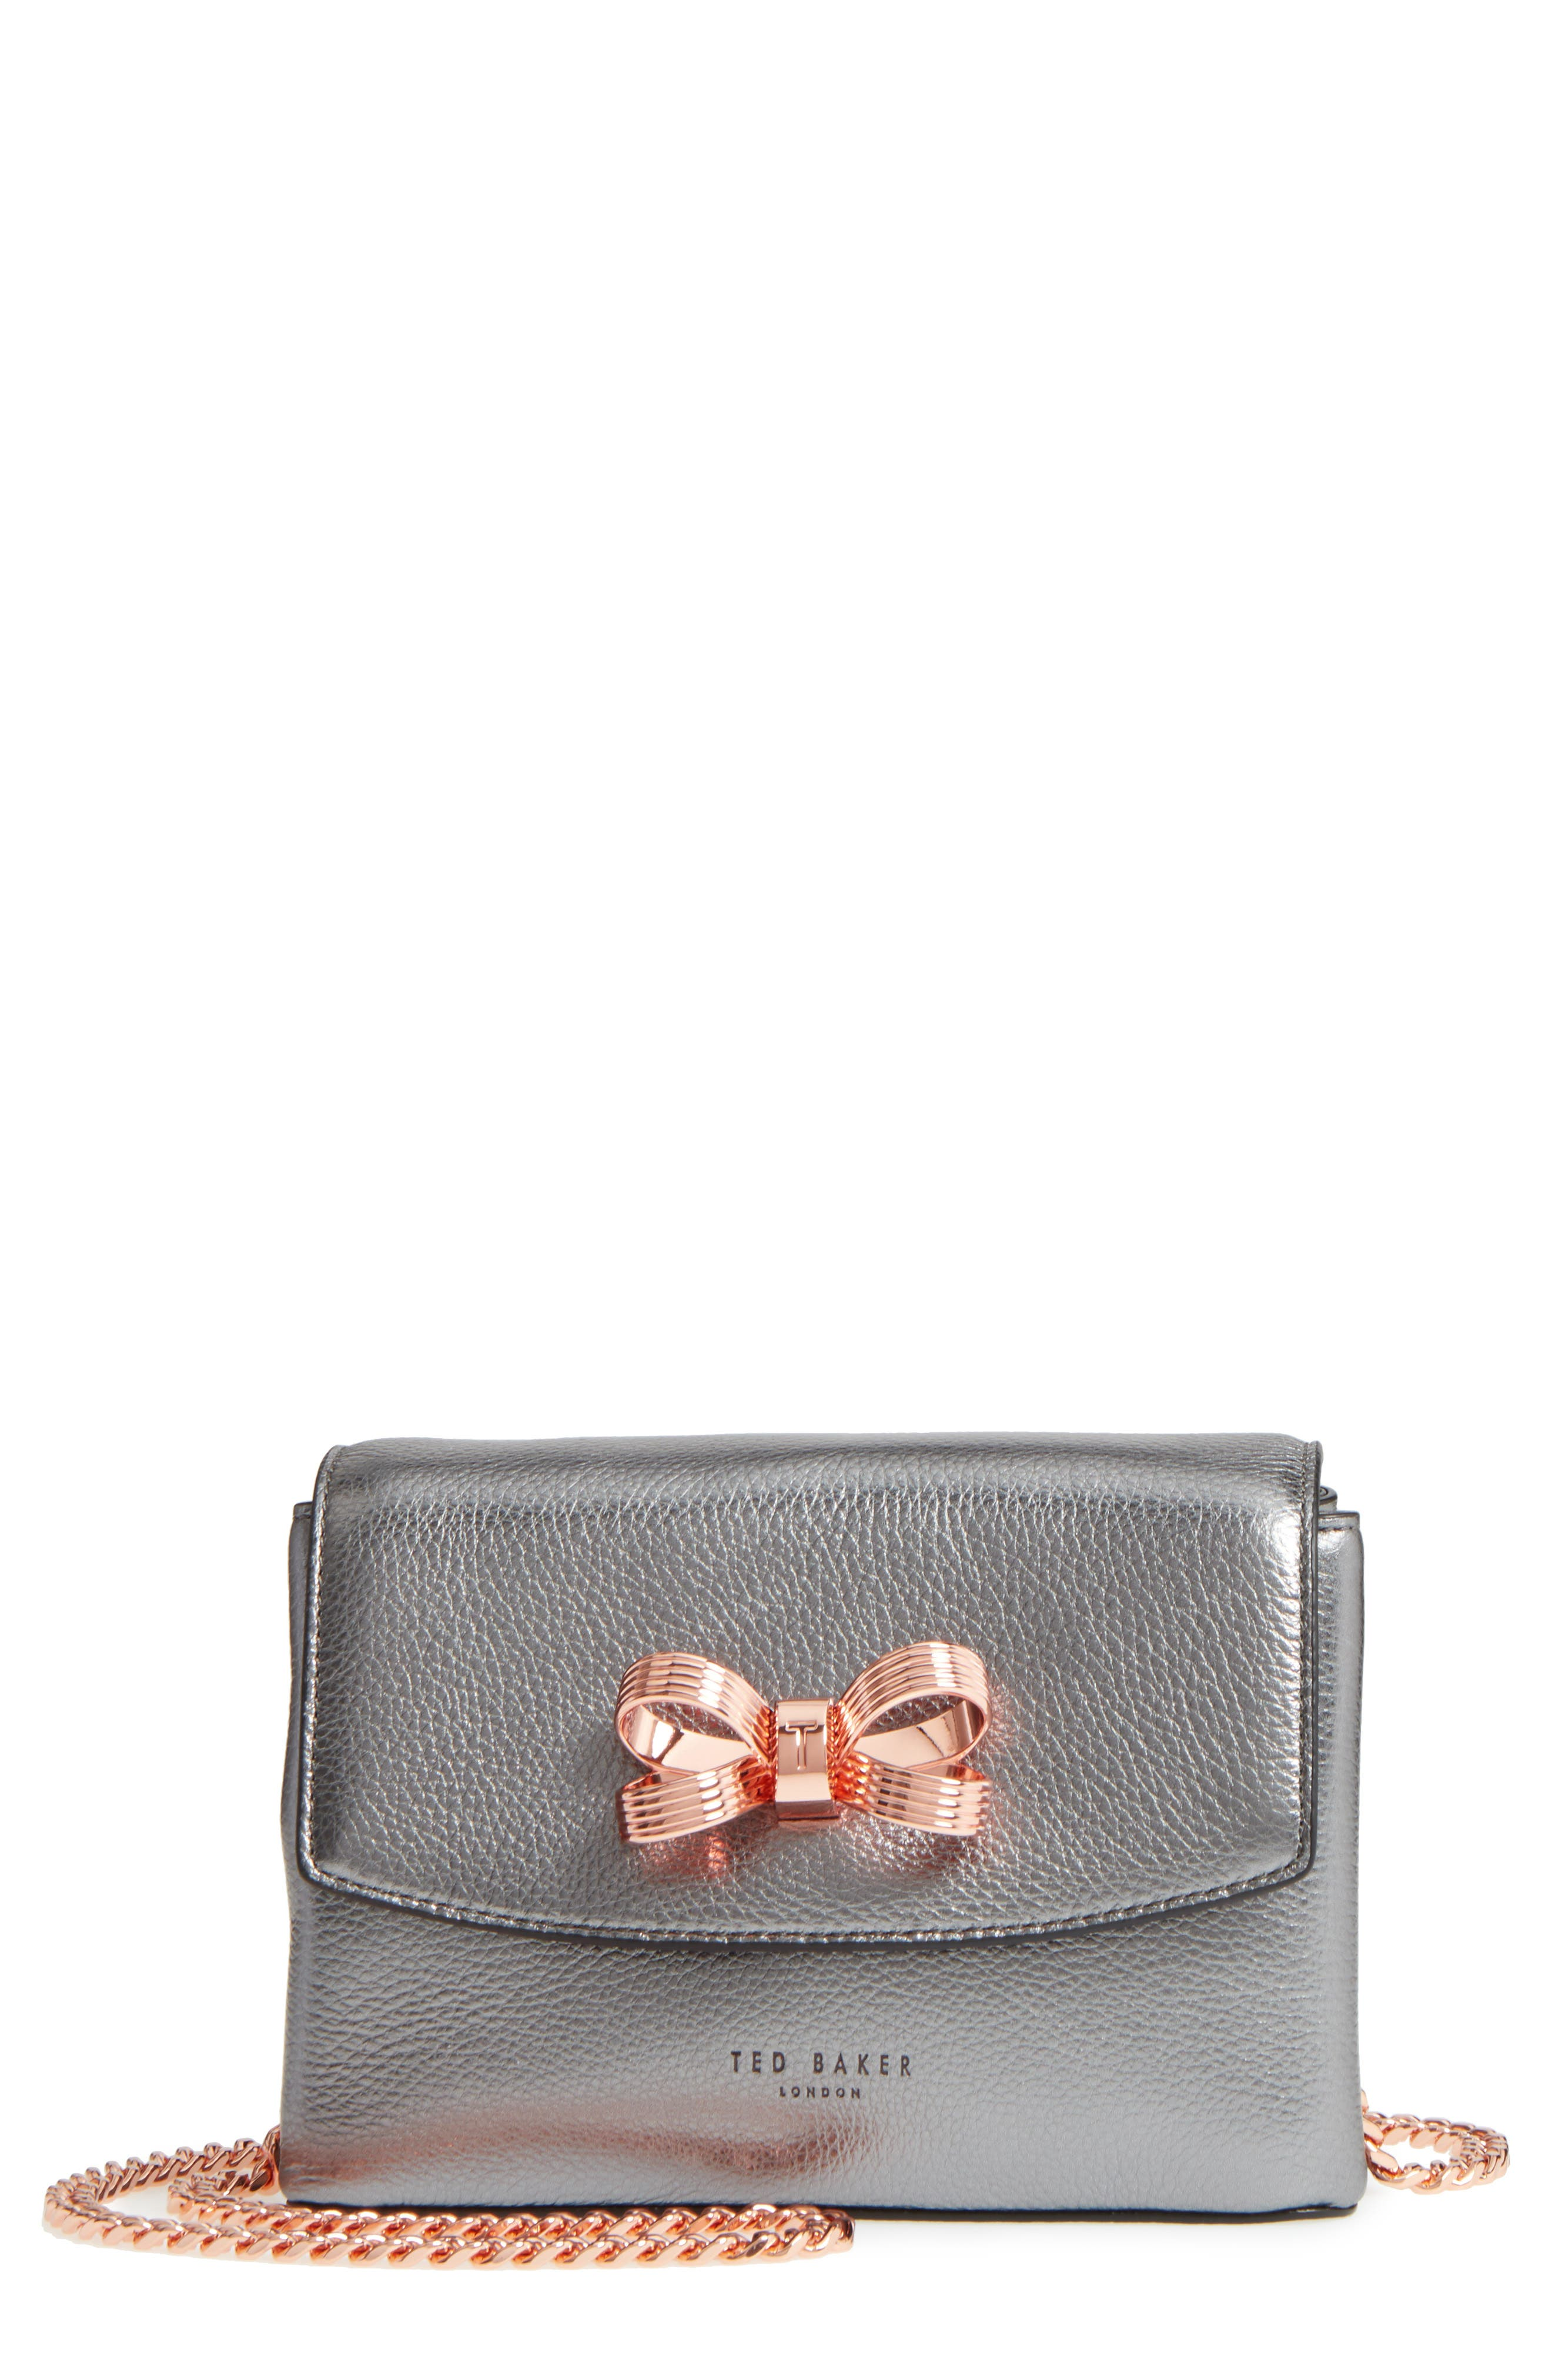 Lupiin Metallic Leather Crossbody Bag,                         Main,                         color, 022